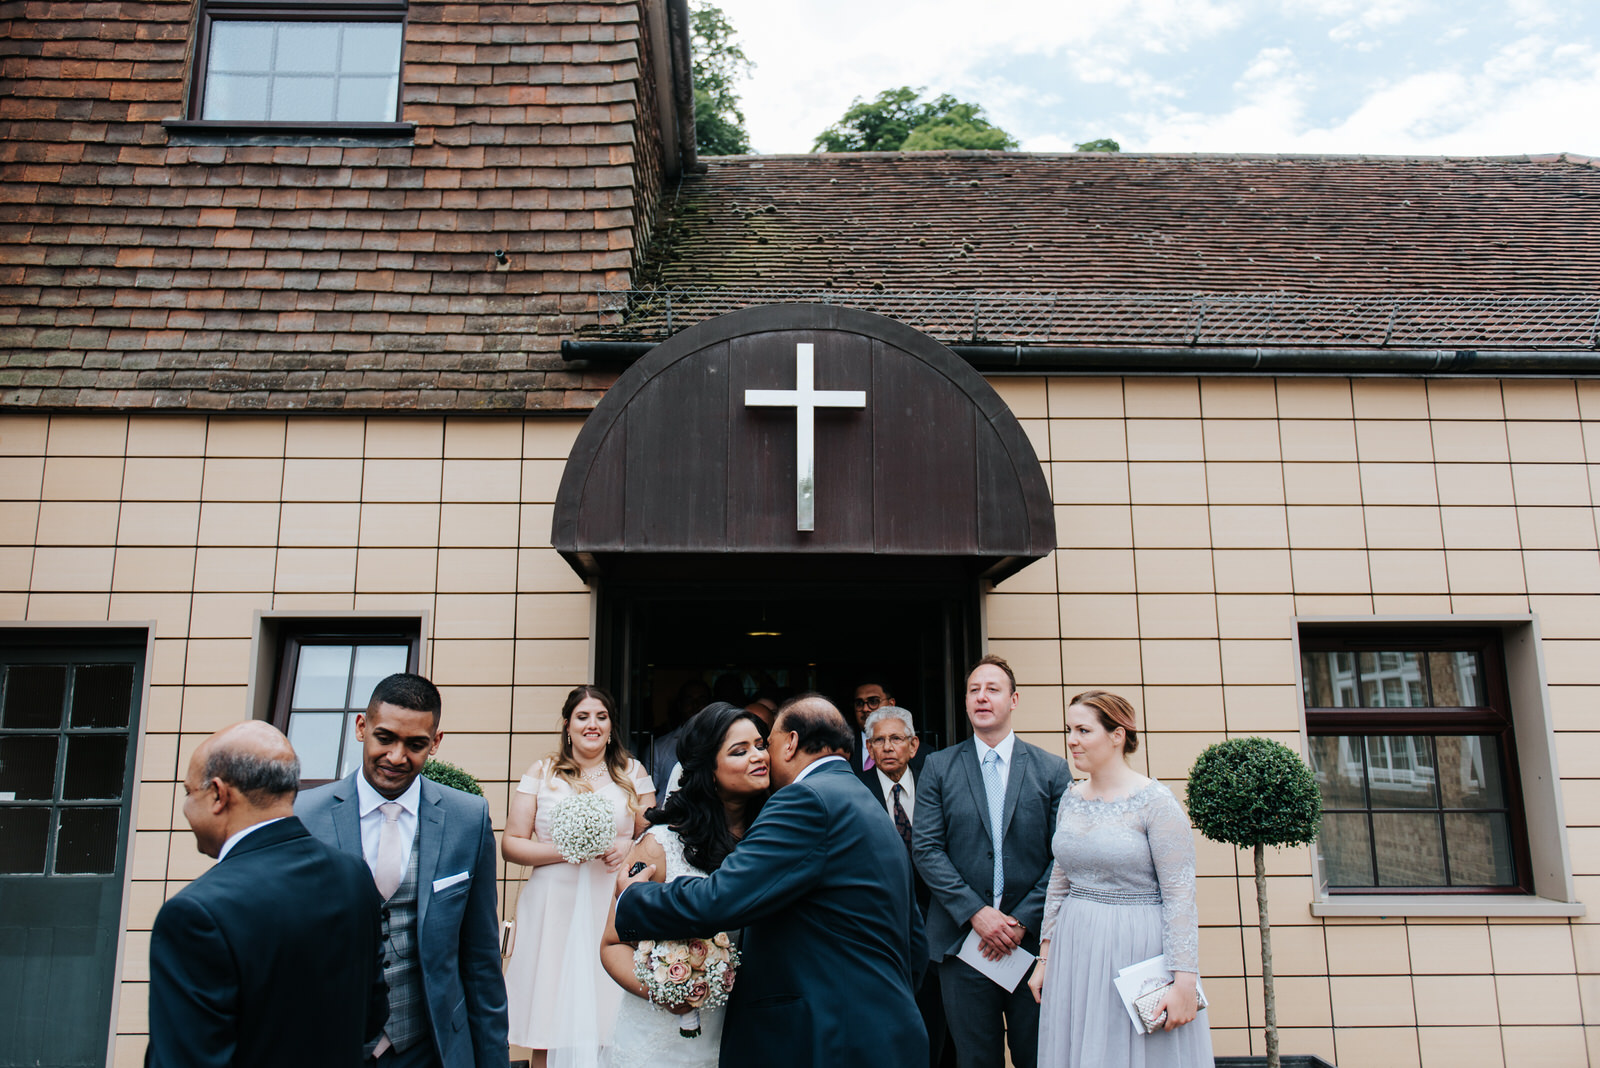 Bride and groom welcome guests outside chapel after ceremony